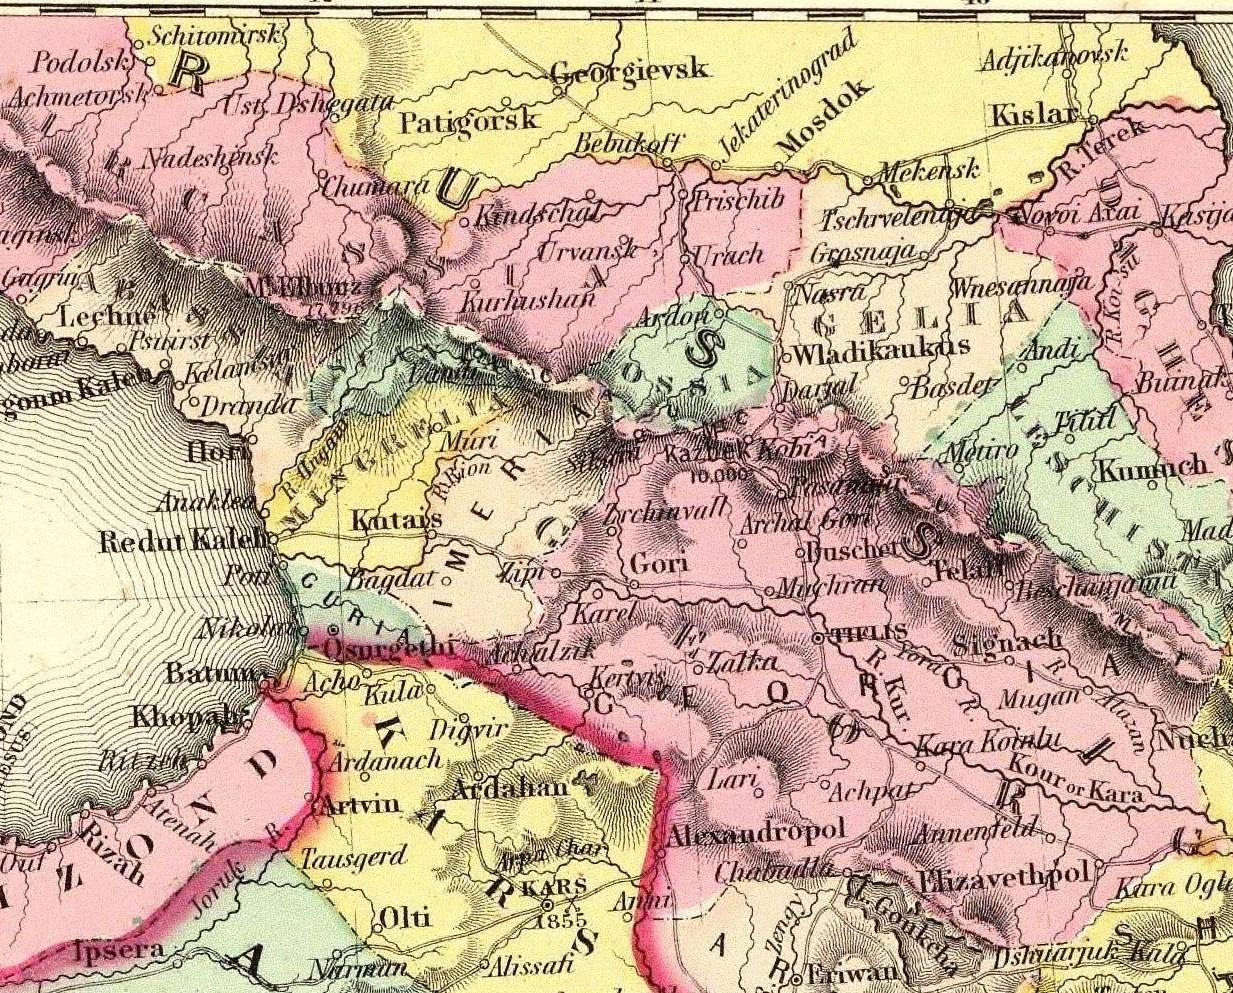 FileColton GW Turkey In Asia And The Caucasian Provinces Of - Abkhazia map caucasus mountains